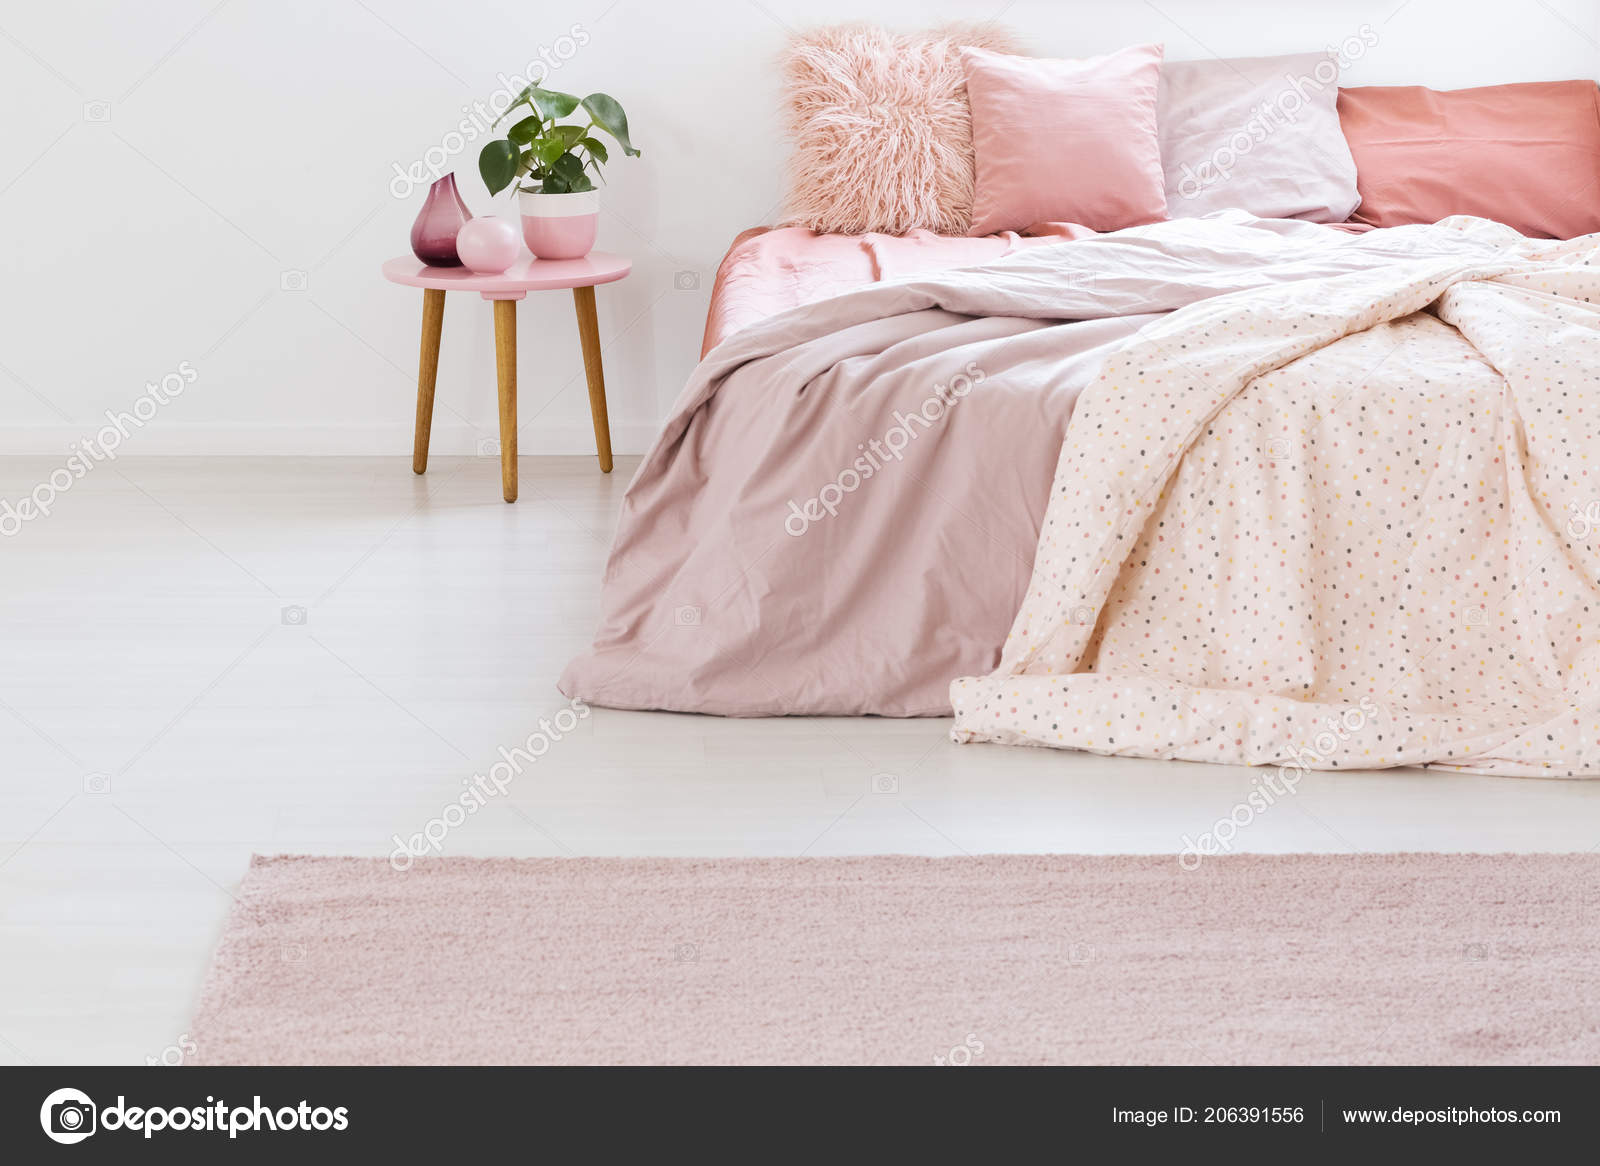 Plant Table Next Bed Pink Sheets Cushions Pastel Bedroom ...